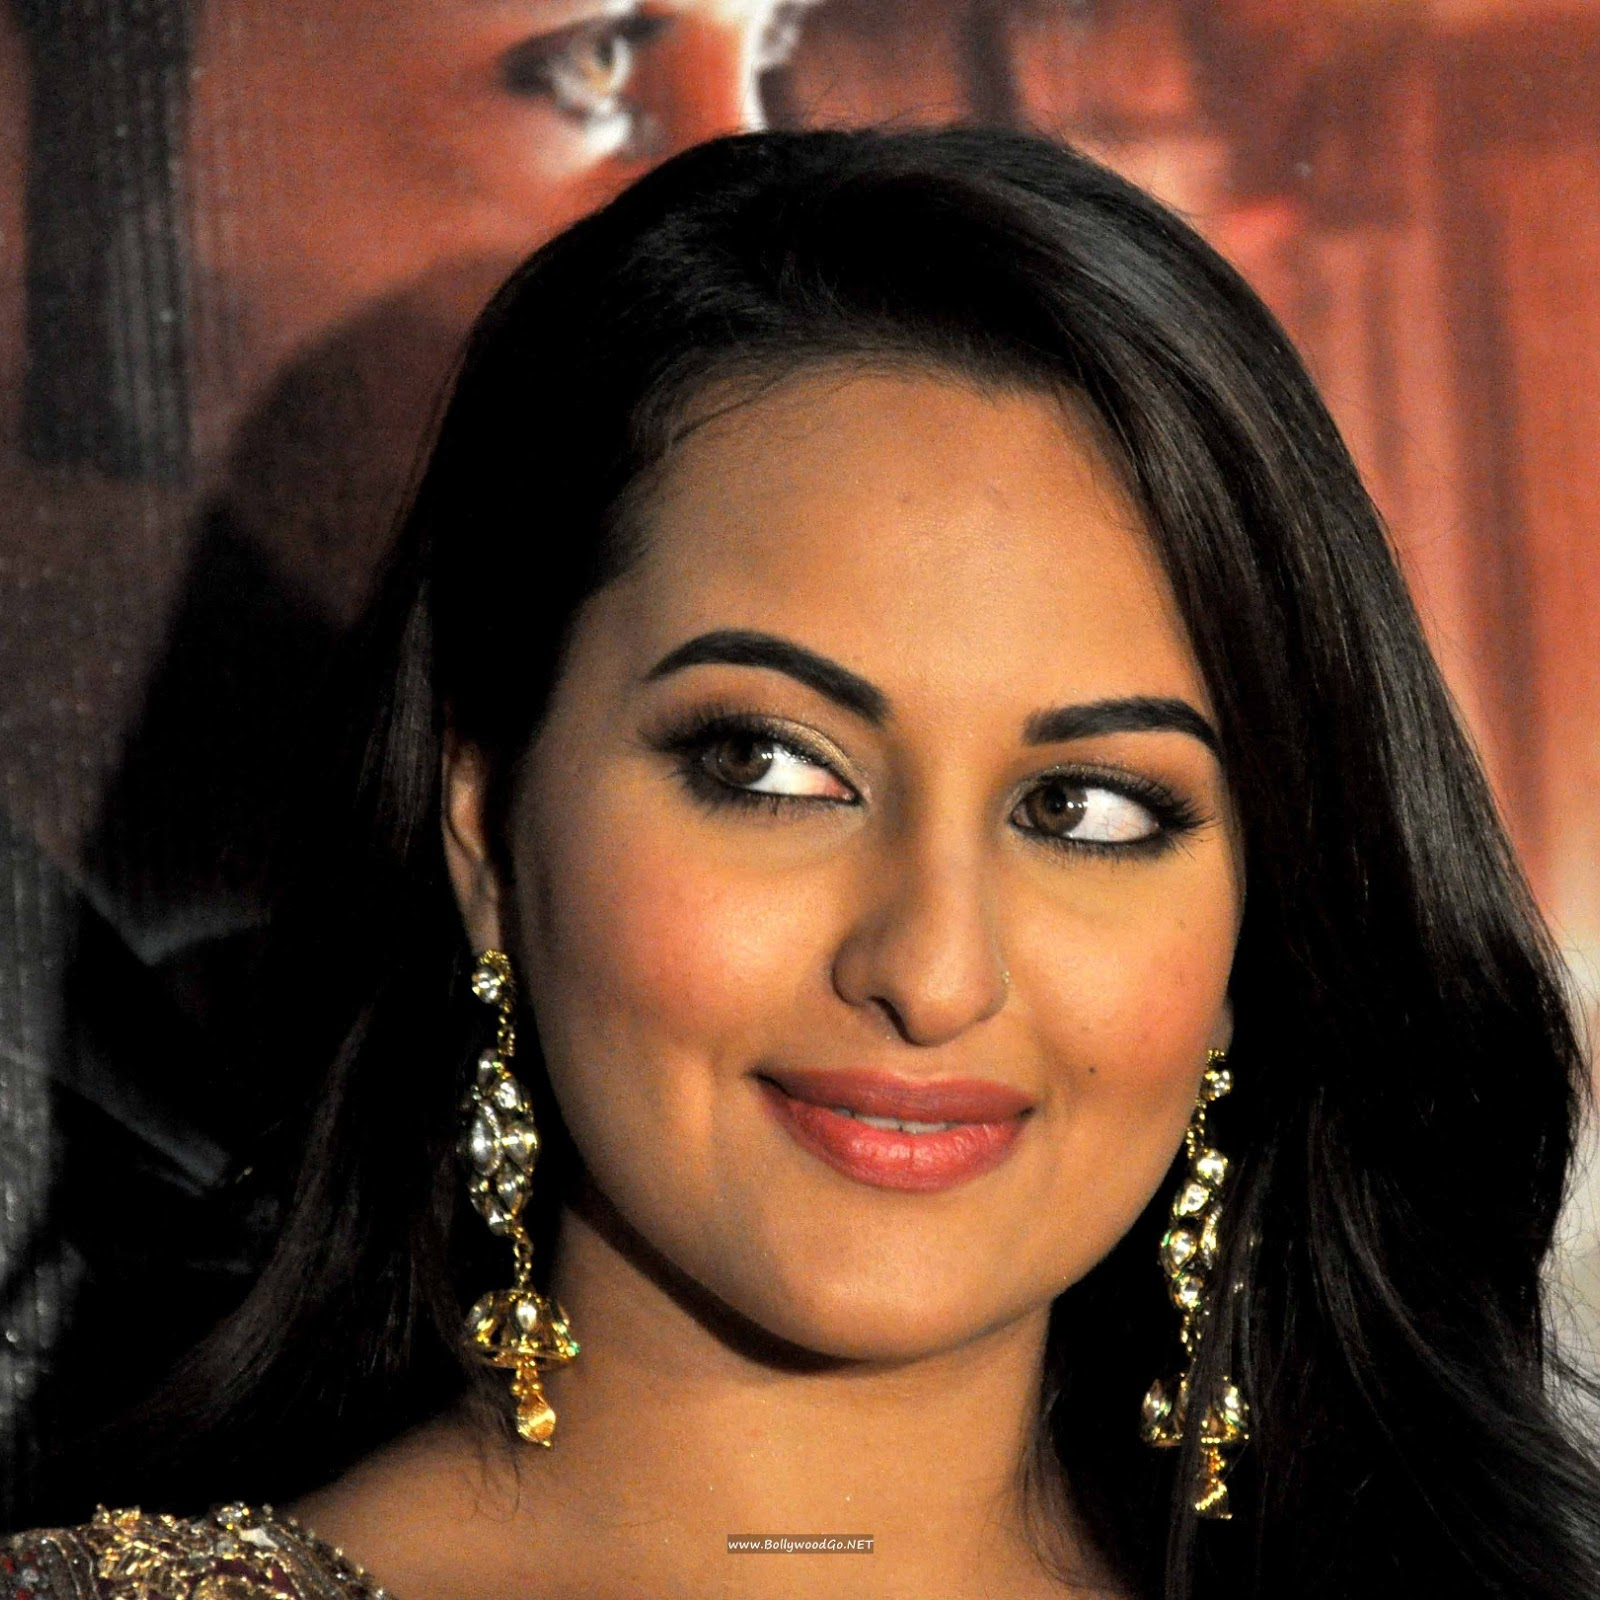 sonakshi sinha hot kiss - photo #26